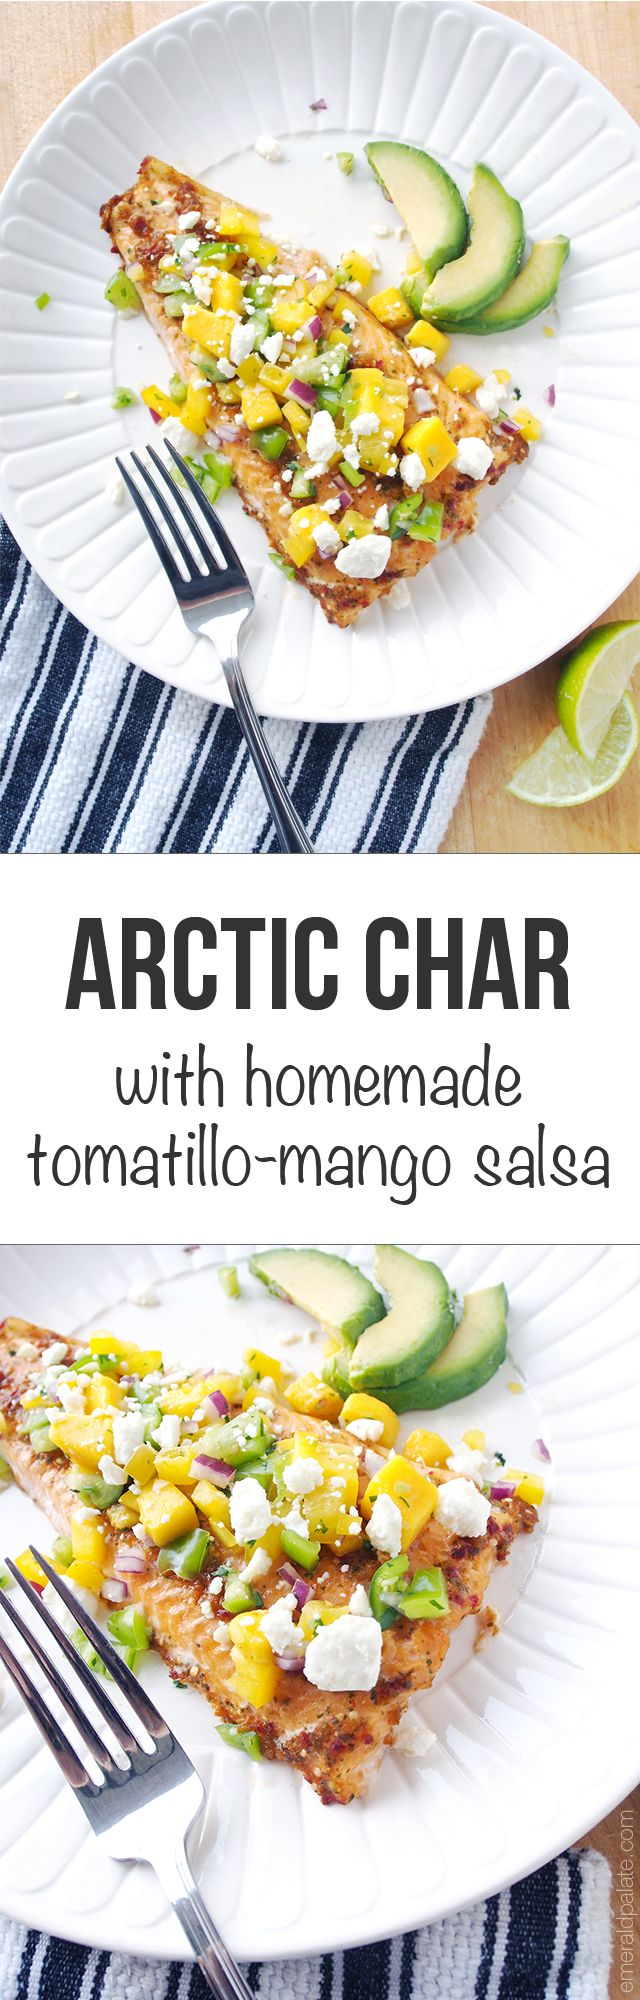 An easy, healthy arctic char recipe with homemade tomatillo-mango salsa. Perfect for summer bbqs and dinner parties! Via @emeraldpalate